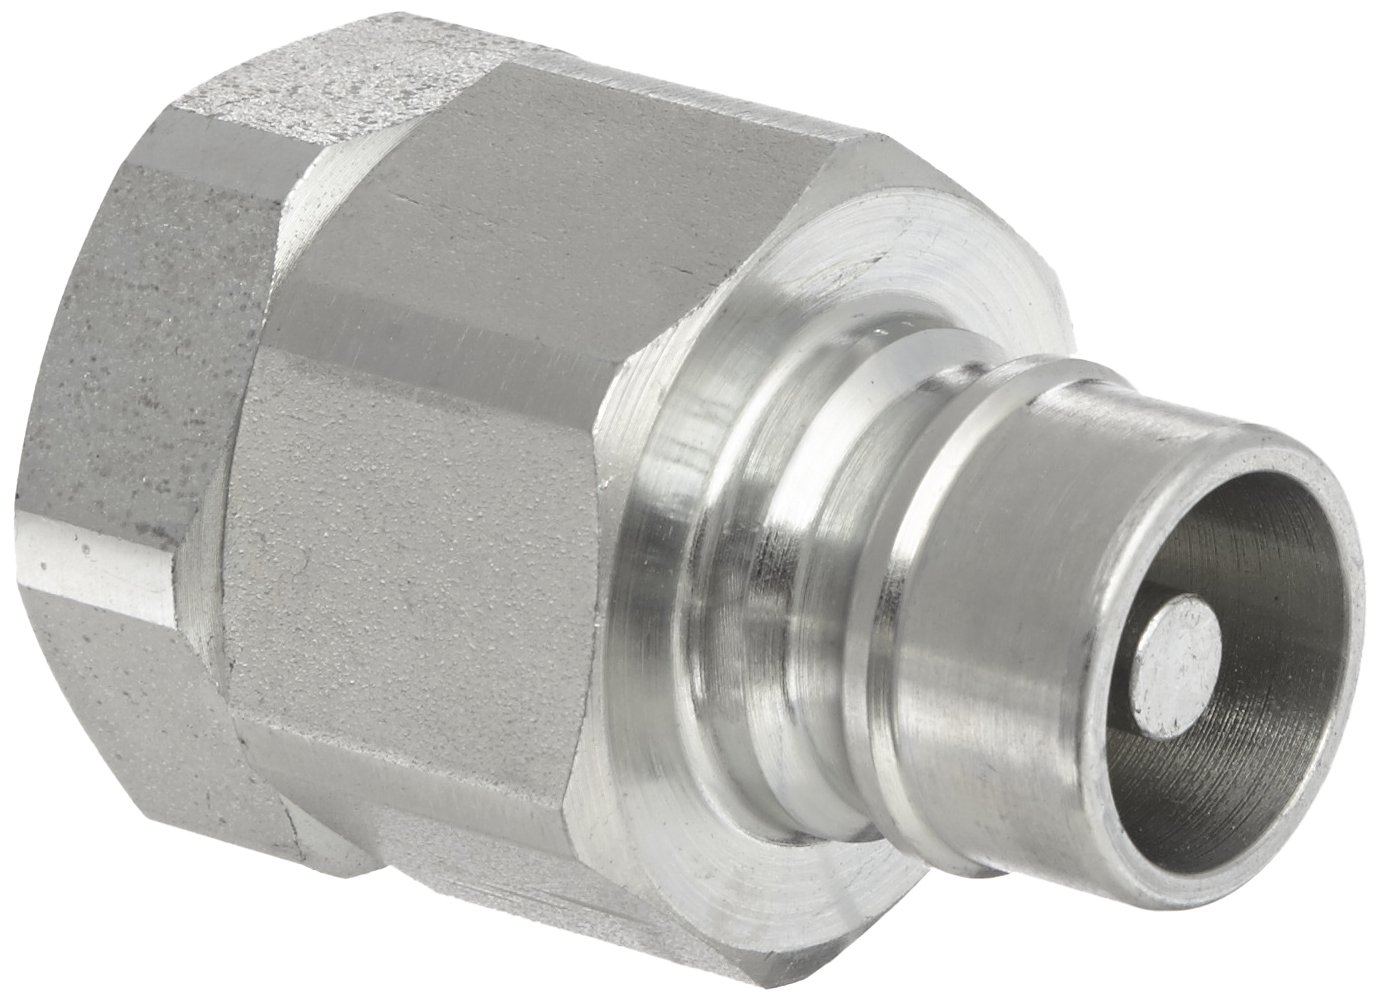 Snap-Tite BVHN12-12F Brass H-Shape Quick-Disconnect Hose Coupling 3//4 NPTF Female x 3//4 Coupling Size 3//4 NPTF Female x 3//4 Coupling Size Nipple